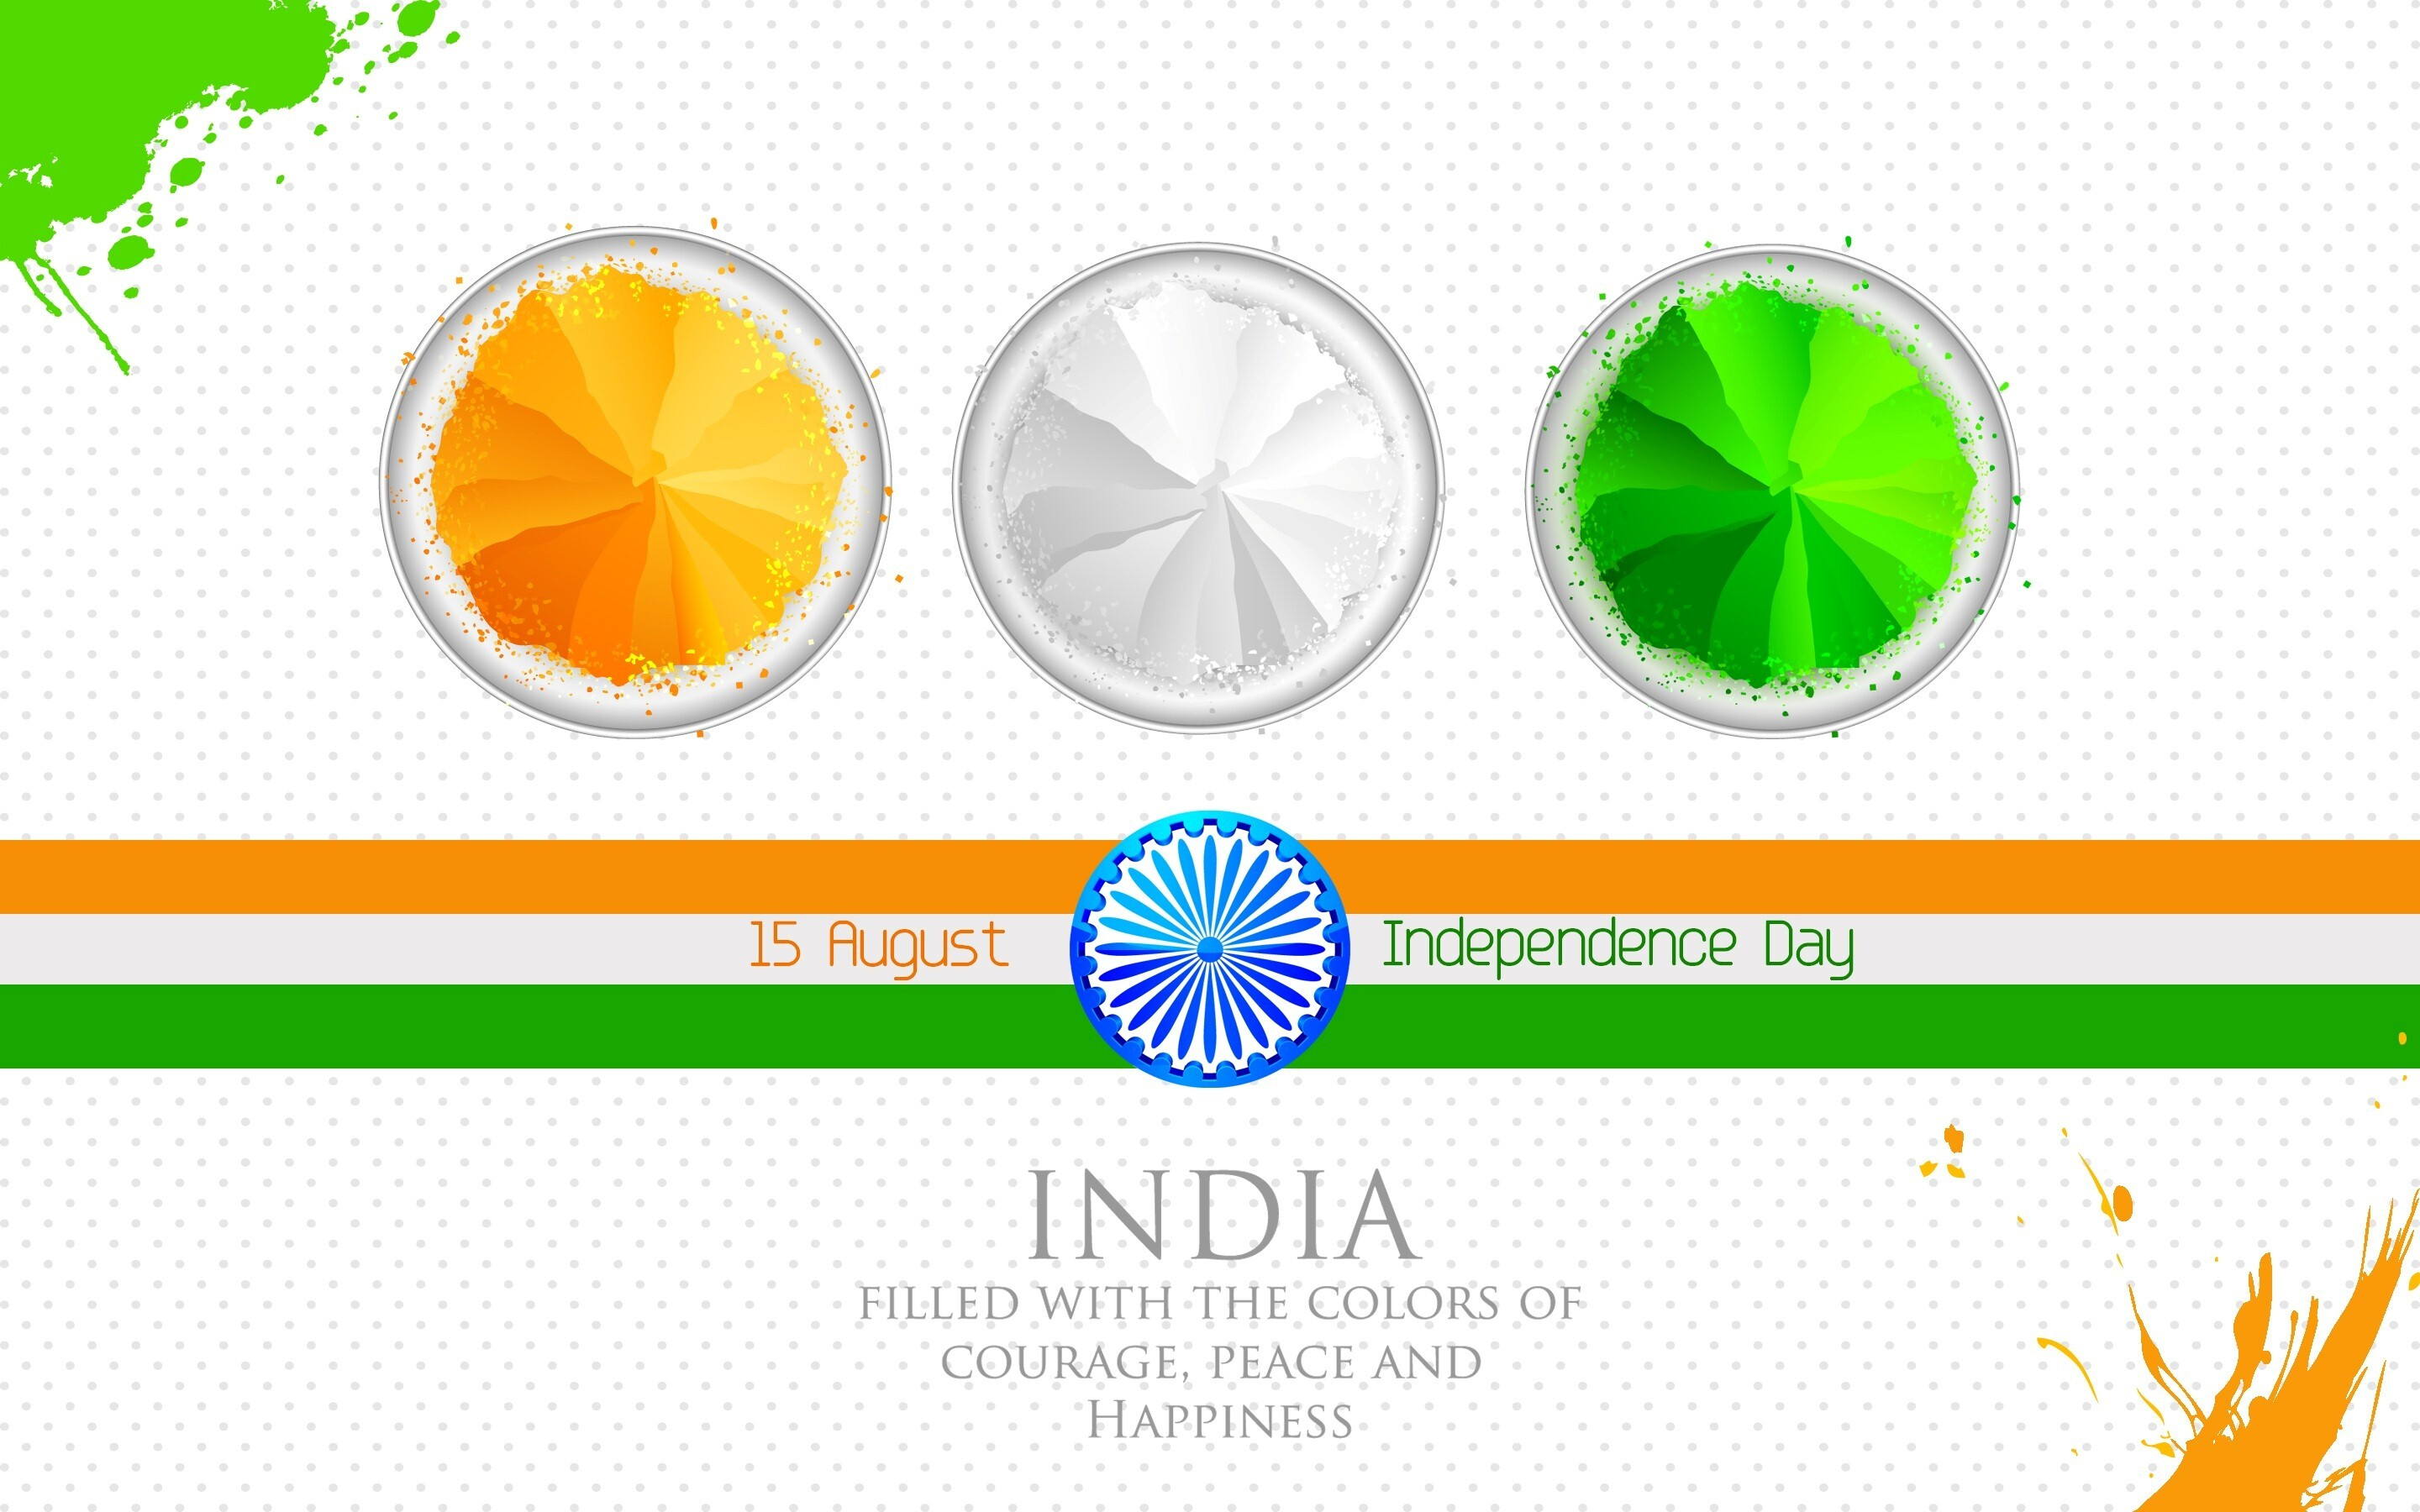 15th August Happy Independence Day Wishes Quote Wallpapers Hd